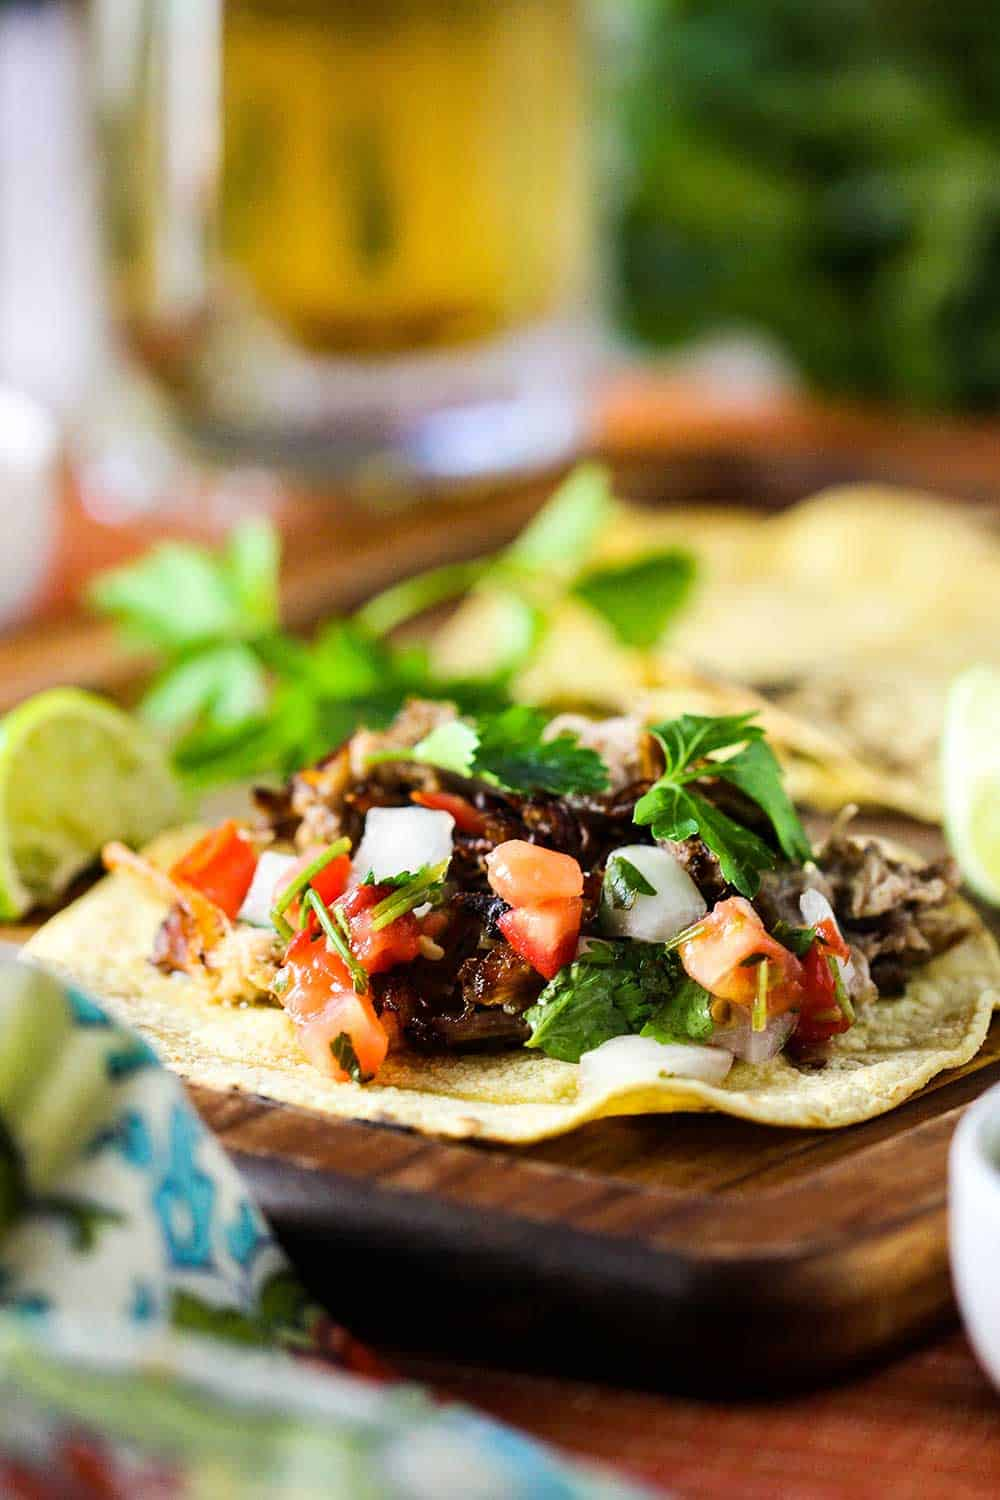 Pork carnitas tacos with traditional garnishes and a glass of beer.